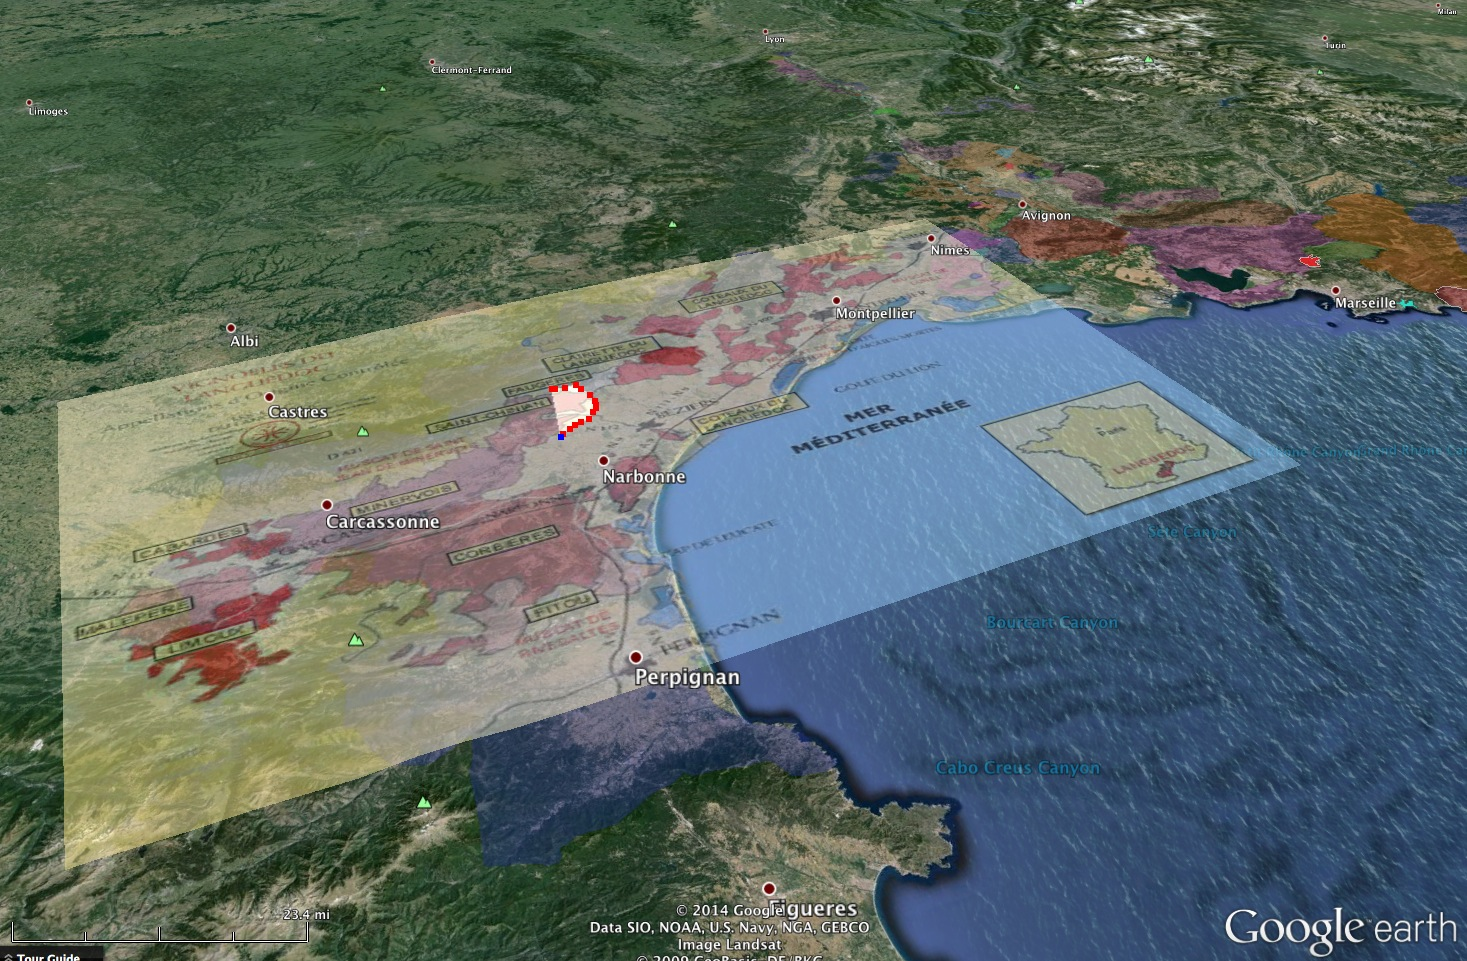 South Of France Map Google.Mapping The South Of France Aops With Google Earth